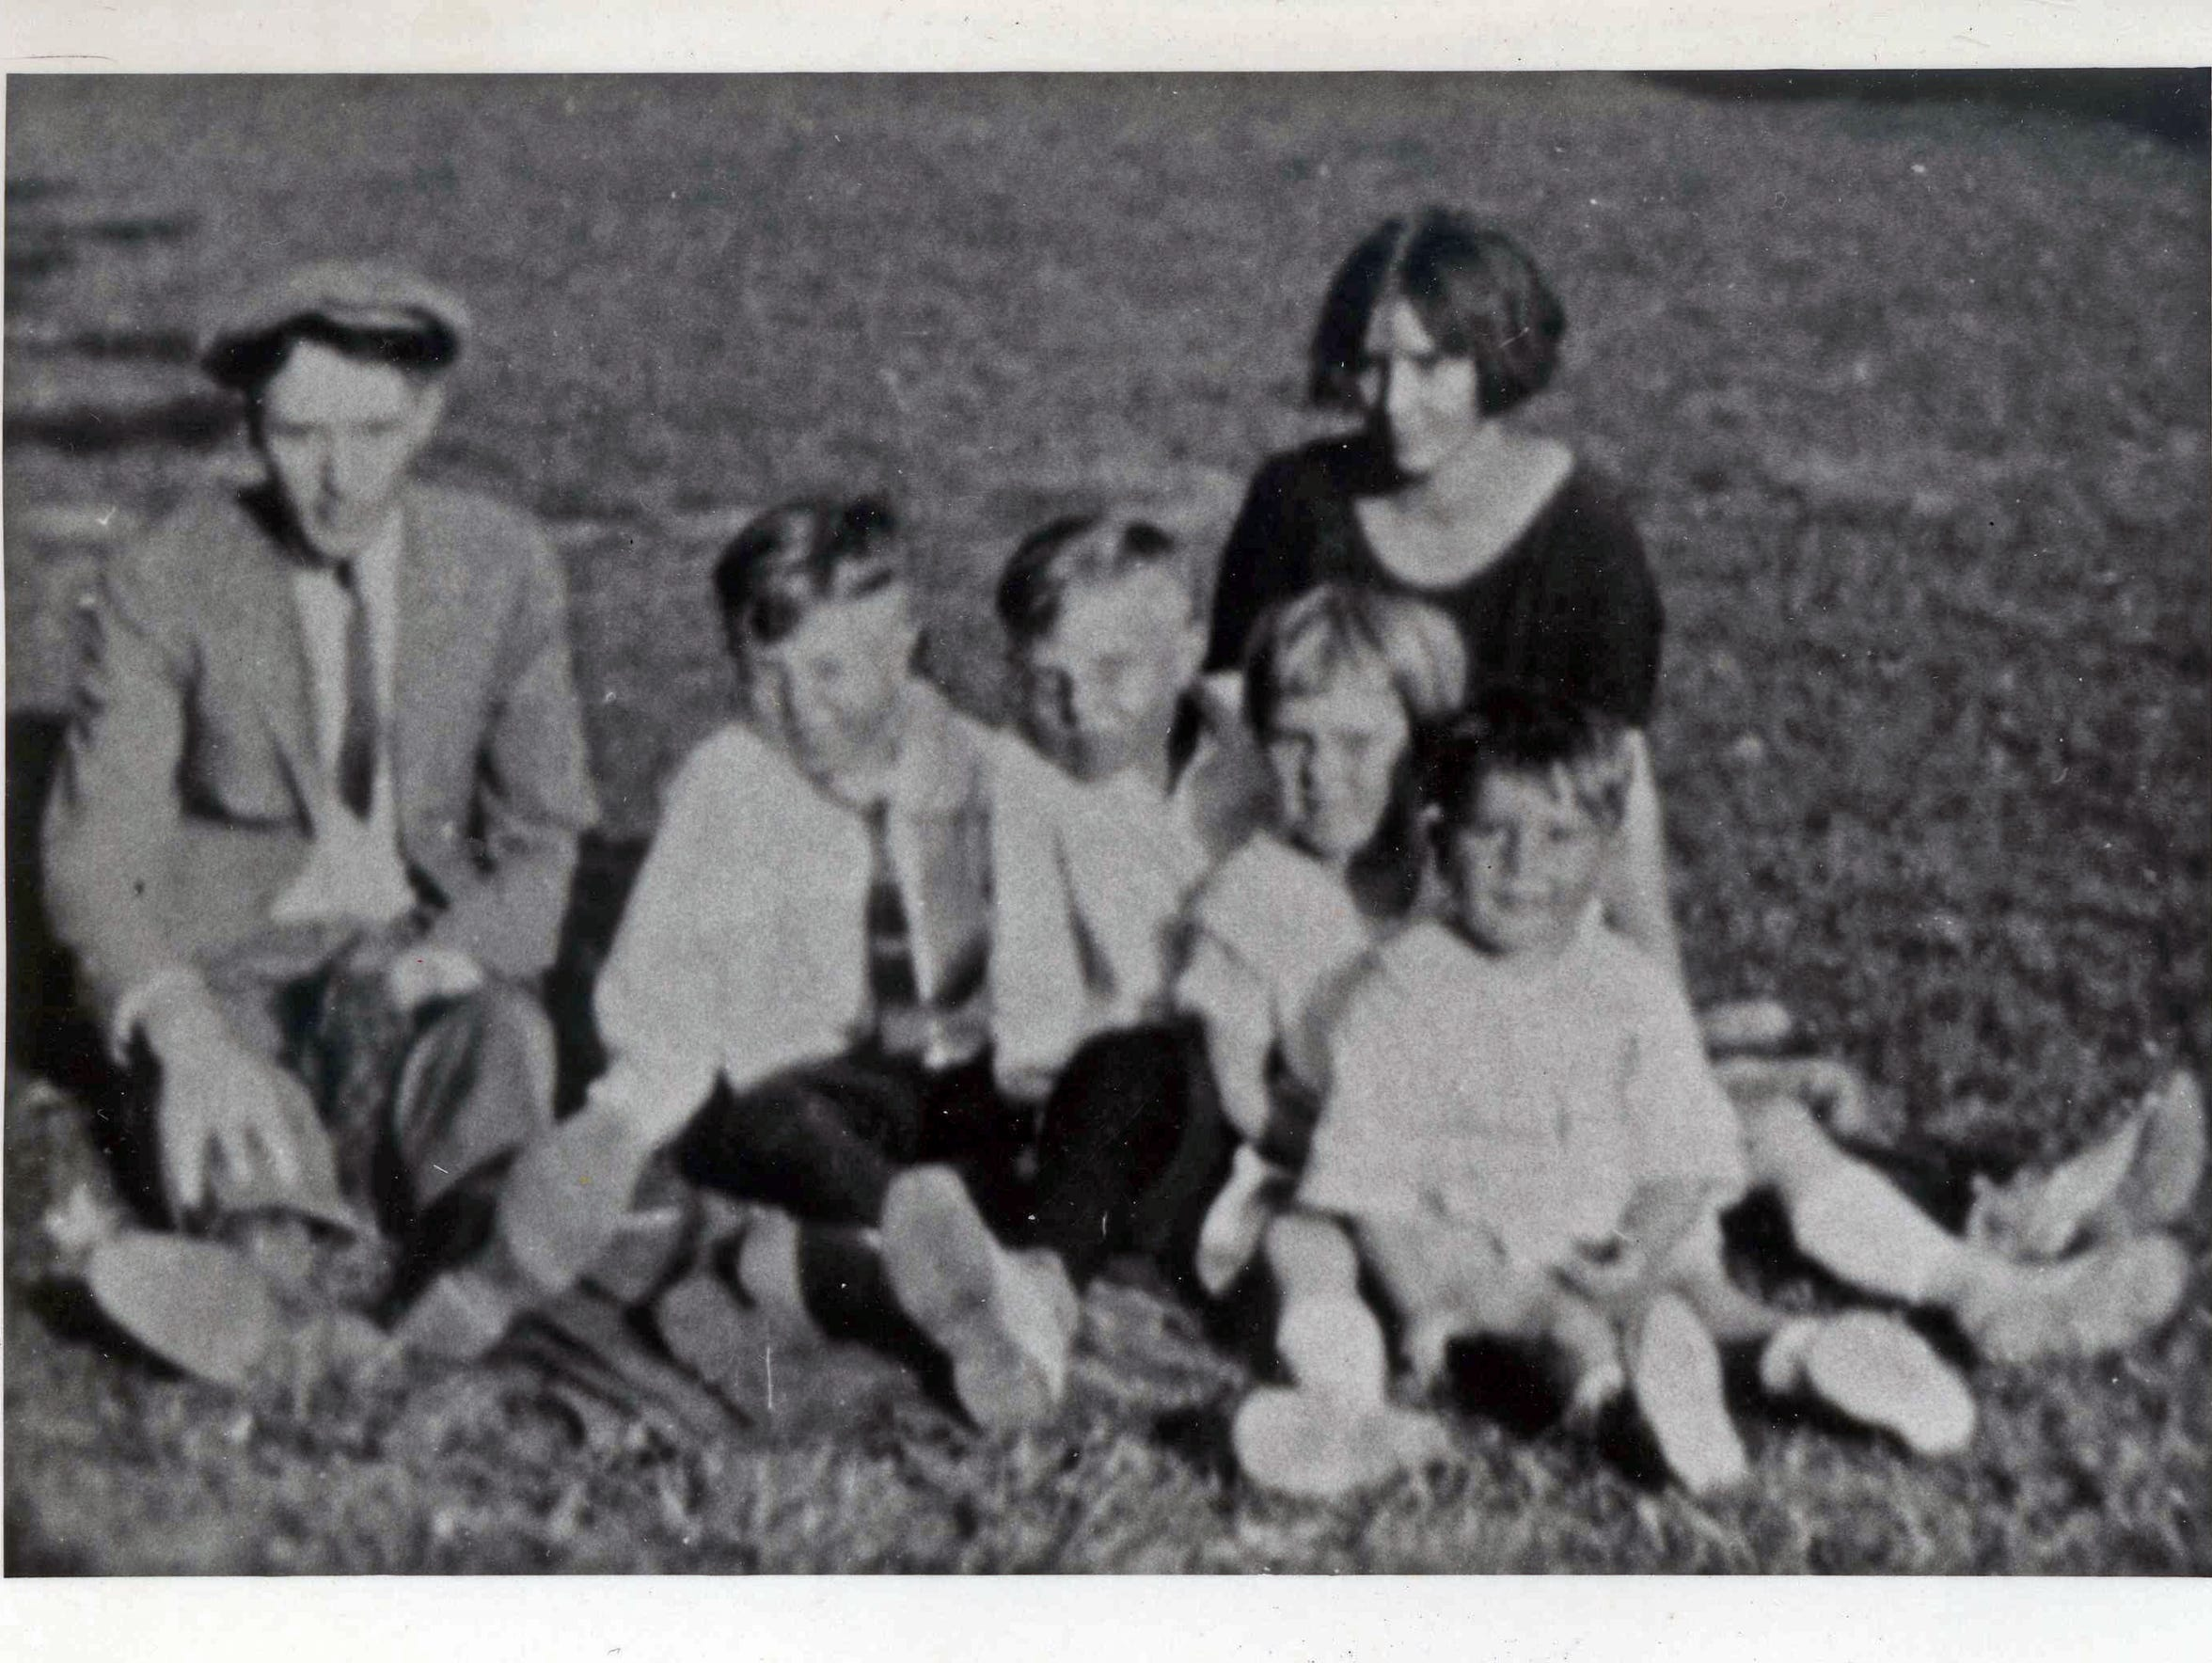 From left, William, Maurice, Donald, Mary, Bernard